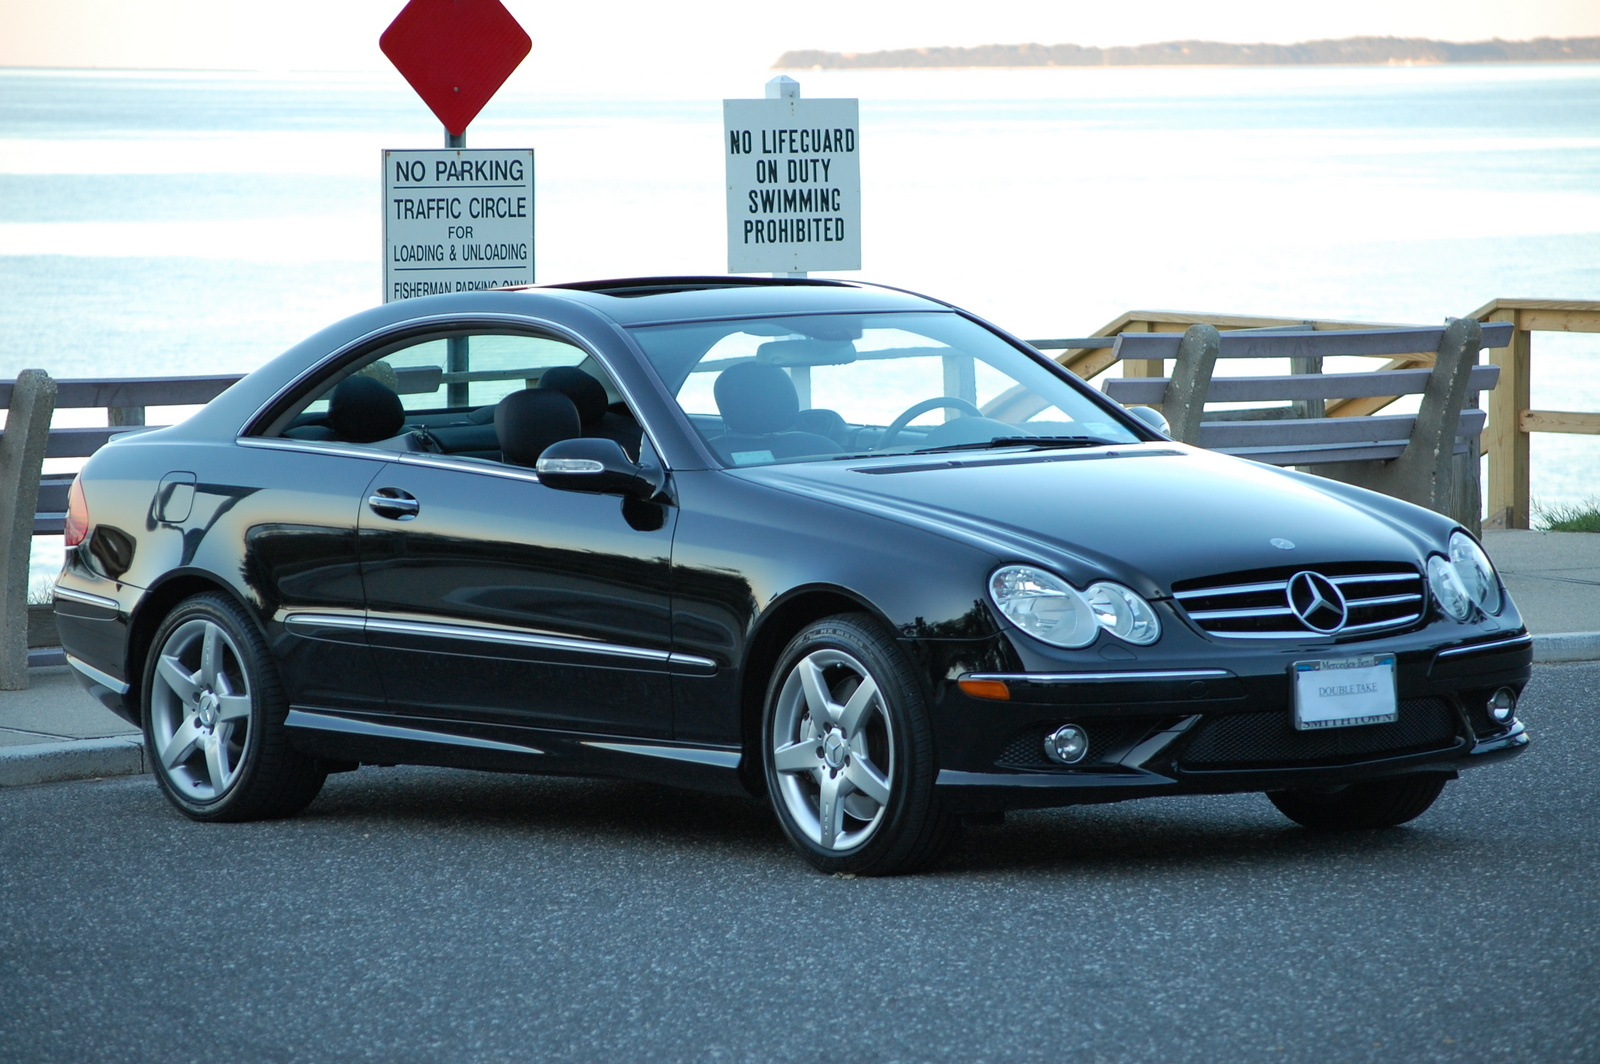 2006 mercedes benz clk class pictures cargurus For2006 Mercedes Benz Clk 500